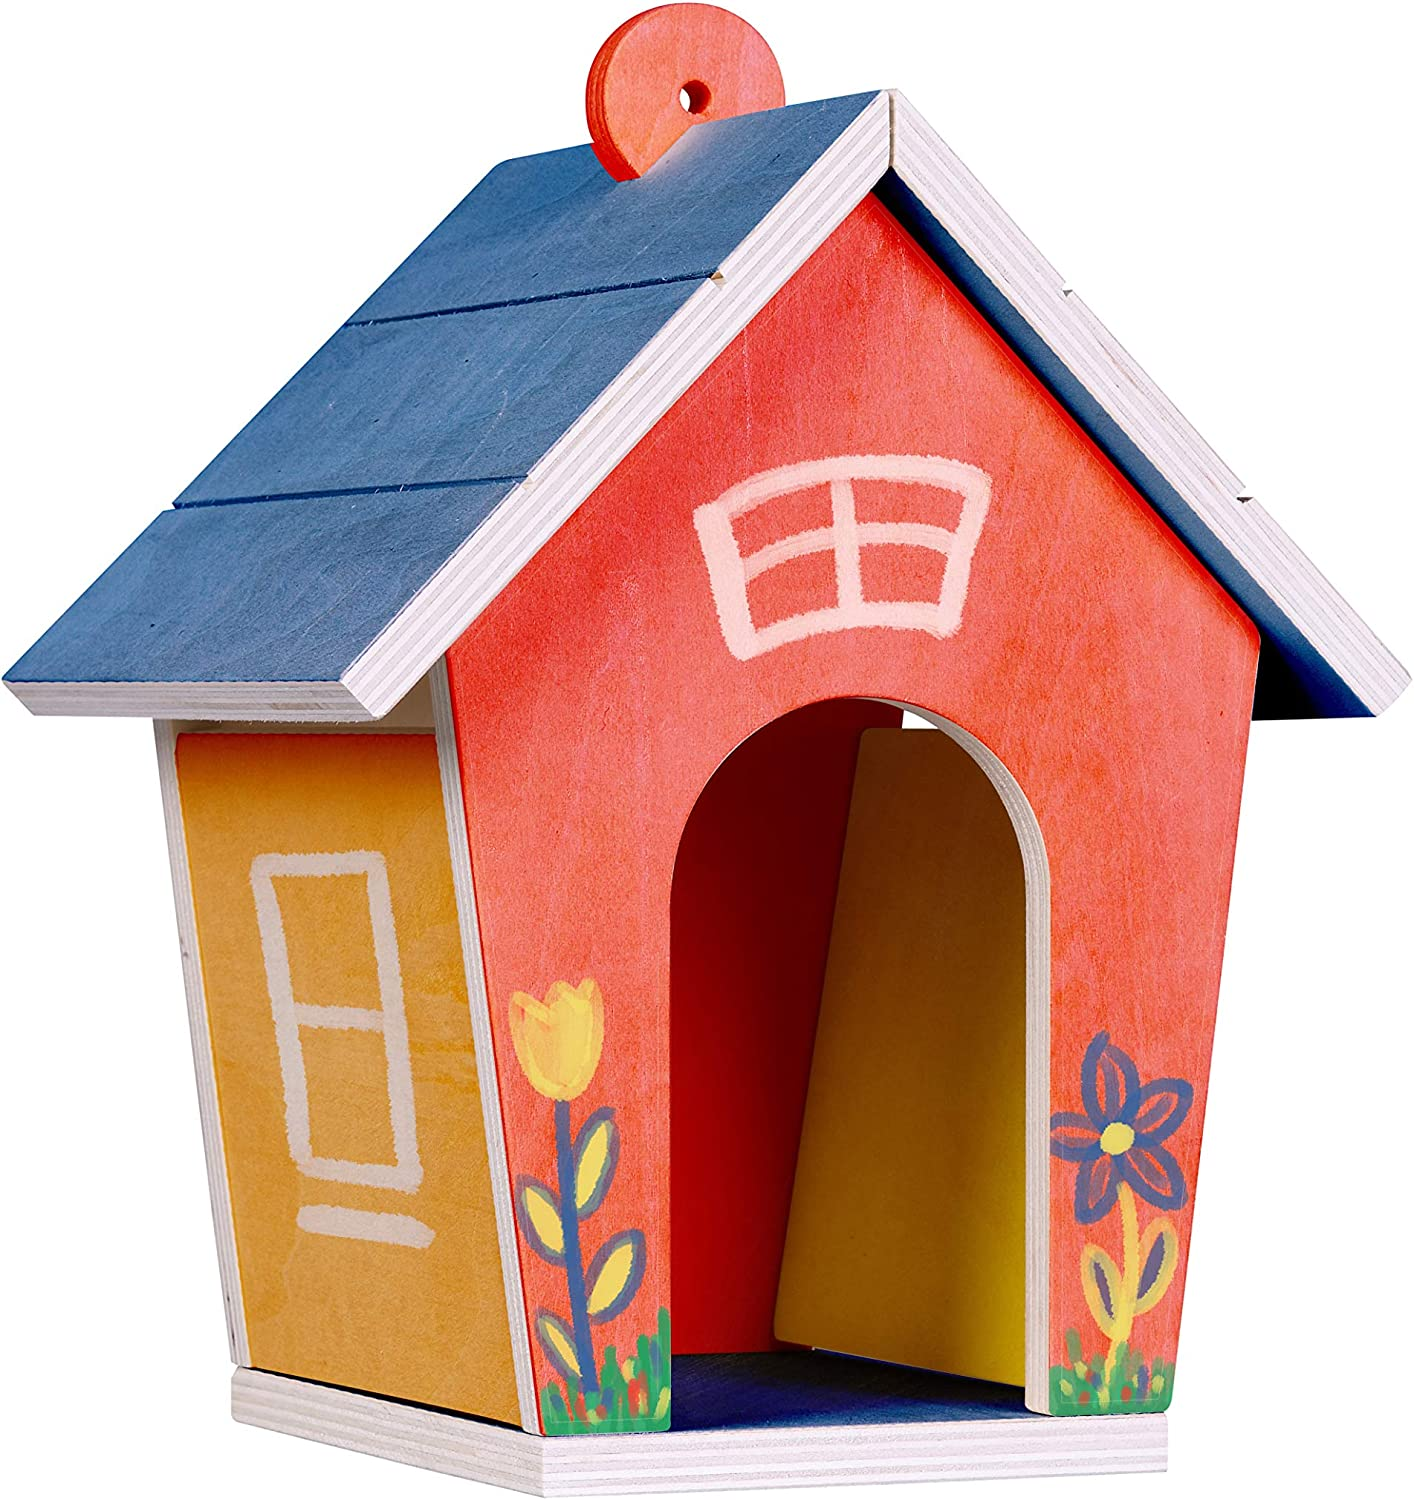 Six Colors of Paint with Paintbrush Area for Bird Feed Birdhouse kit for Kids to Build and Paint DIY kit for Children